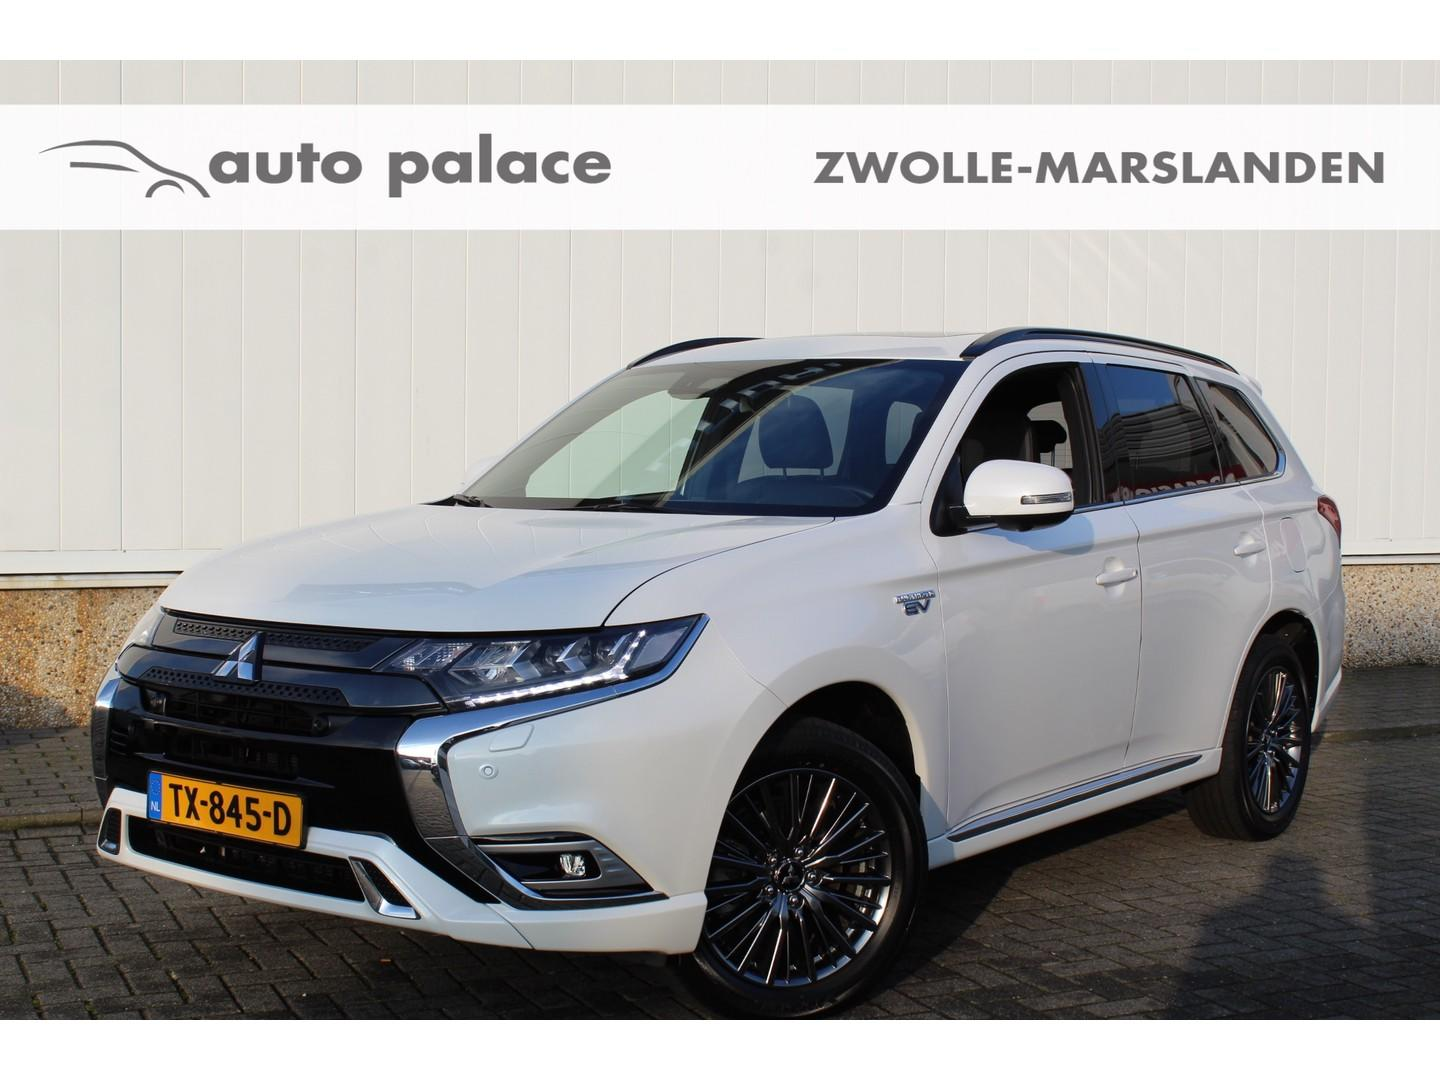 Mitsubishi Outlander 2.4 dohc mivec phev 240pk 4wd automaat s-edition